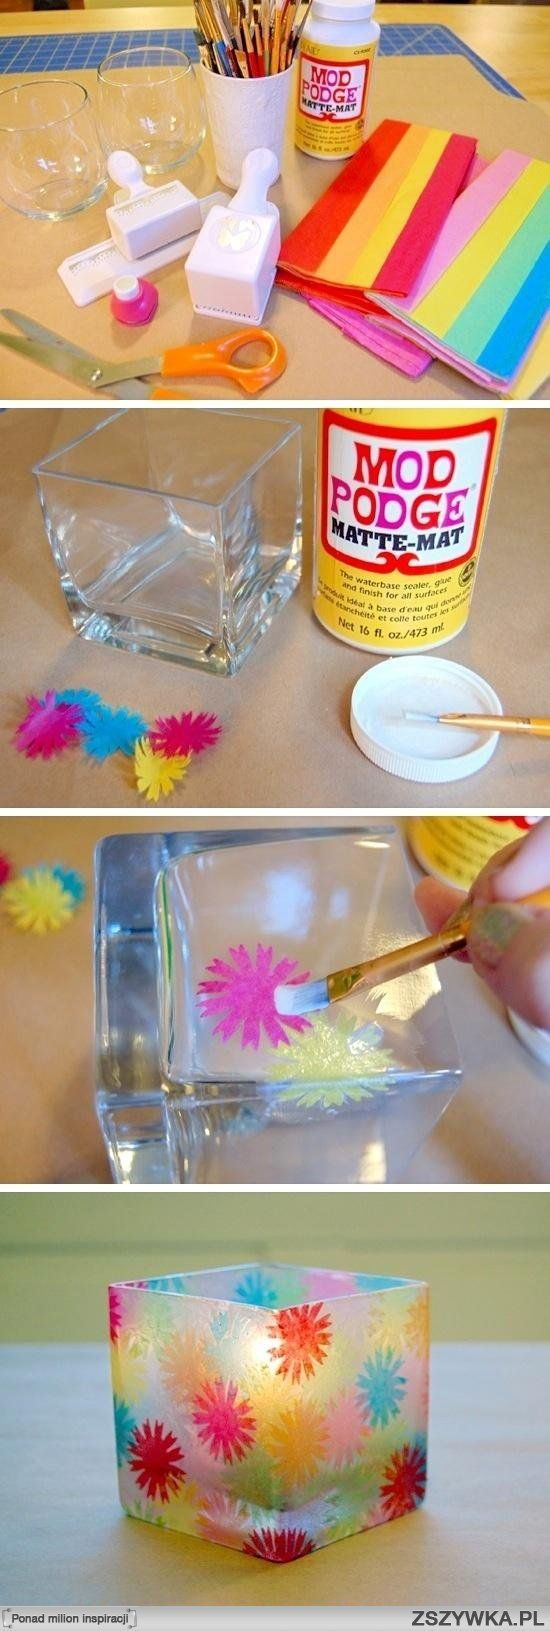 Best DIY Candle Holders Christmas Ideas On Pinterest DIY - Cool diy spring candles and candleholders